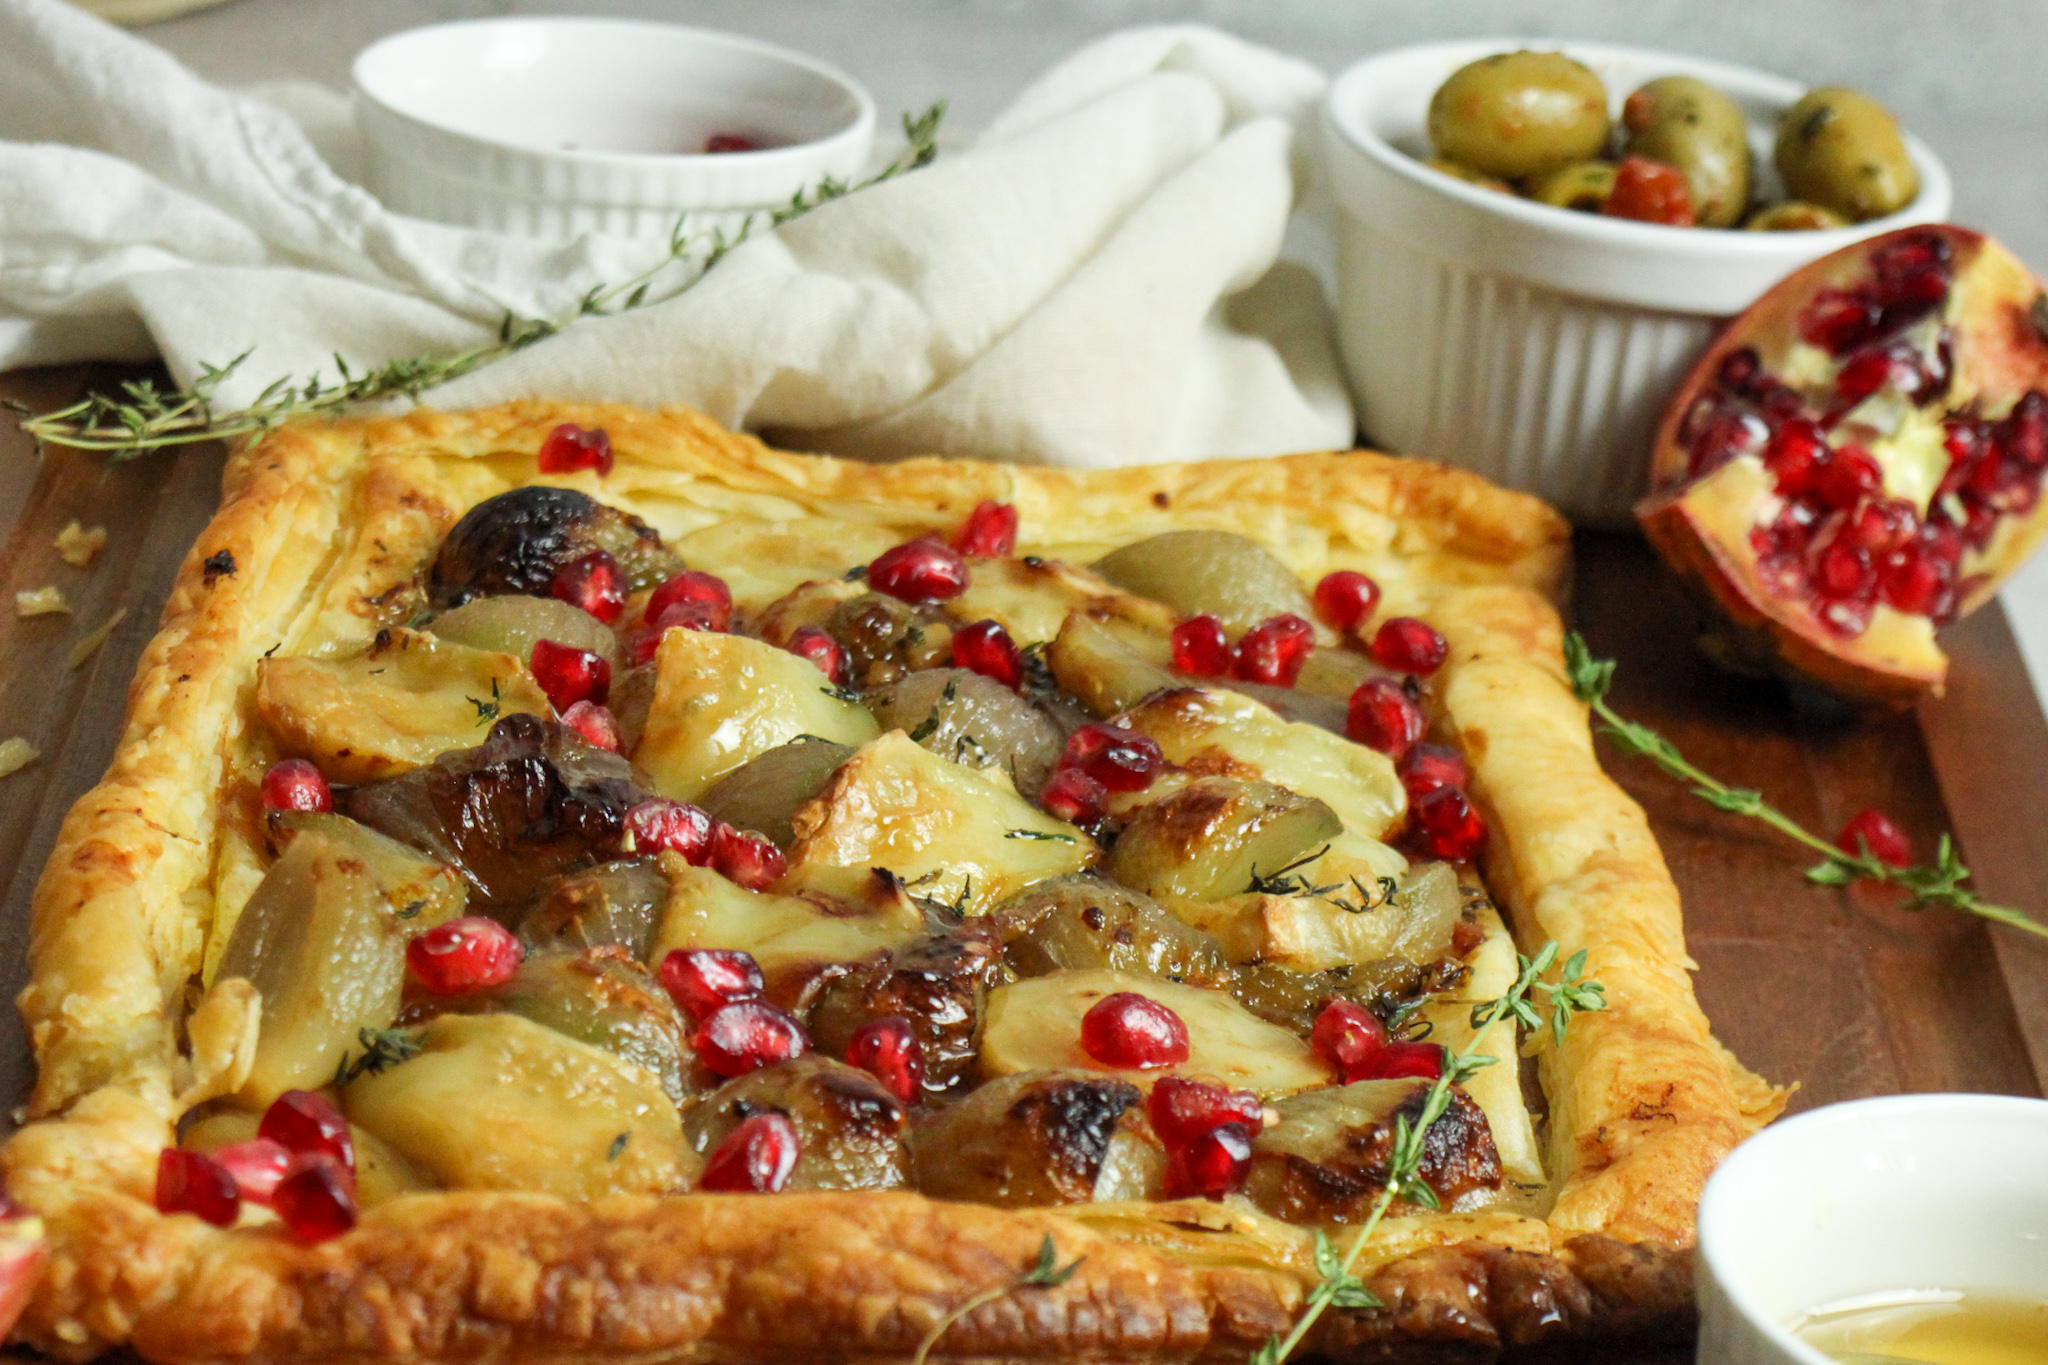 Holiday Appetizer Shallot and Goats cheese tart